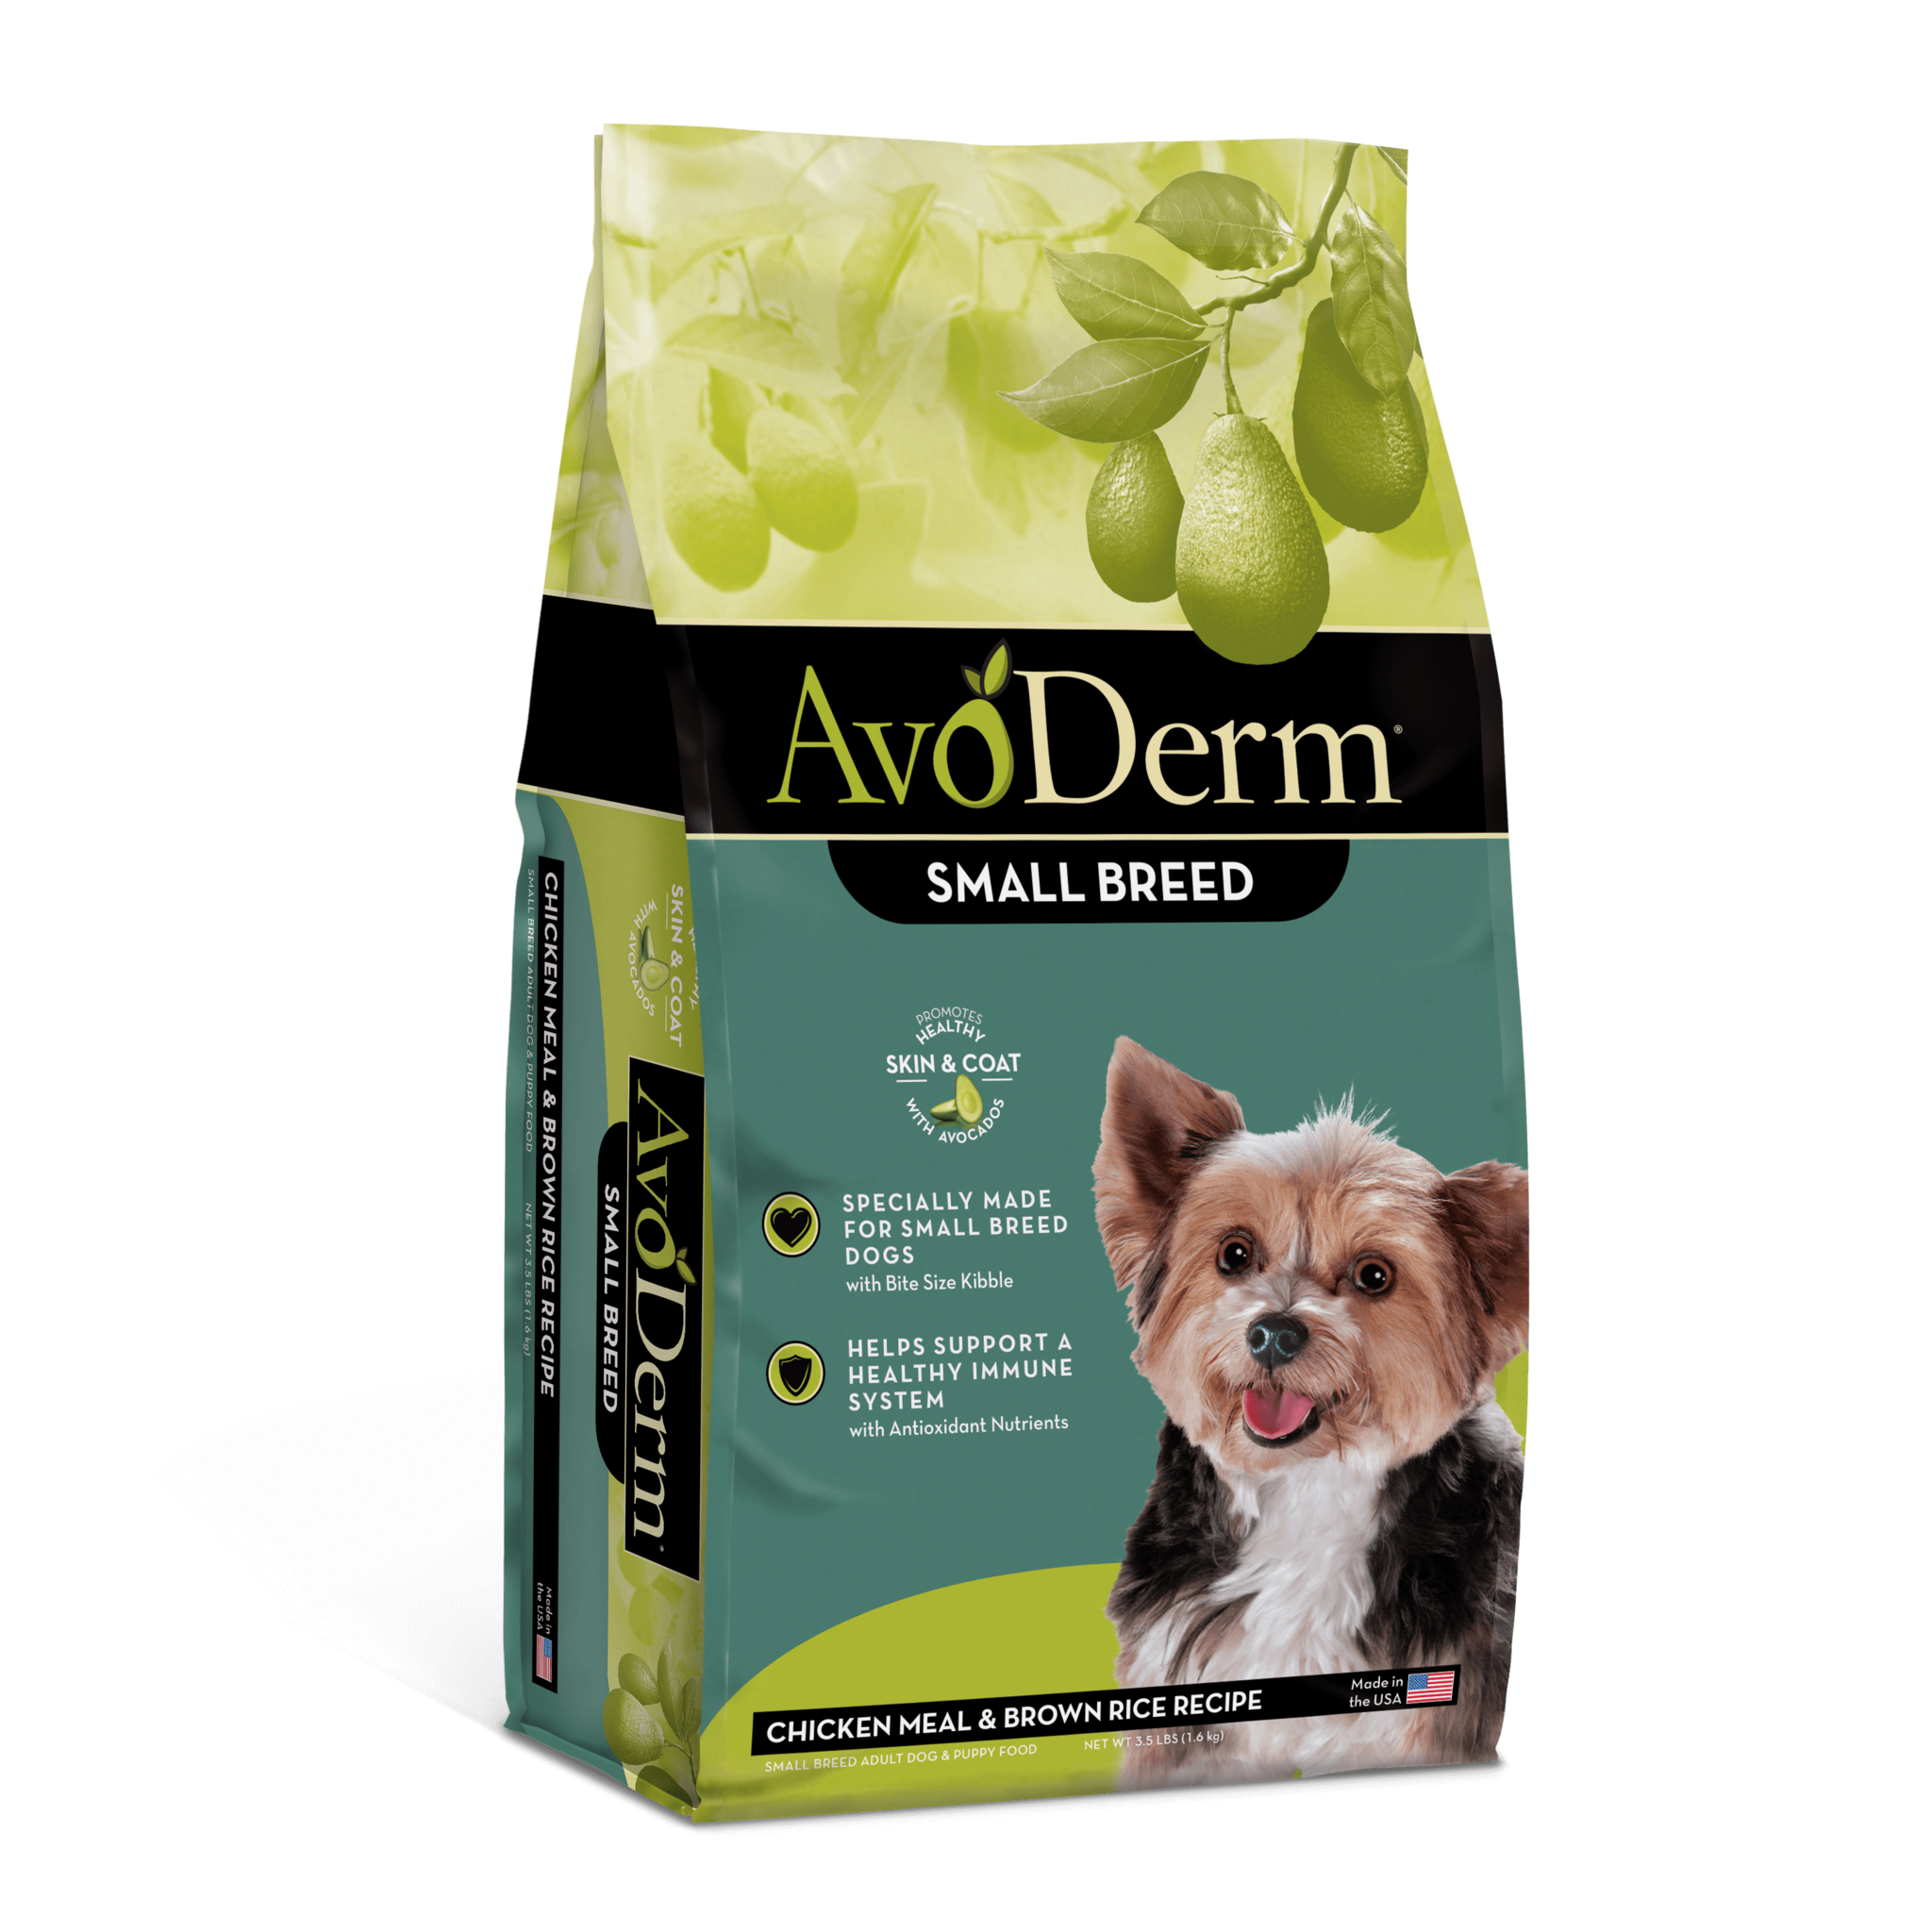 AvoDerm AvoDerm Small Breed Chicken Meal & Brown Rice Dry Dog Food